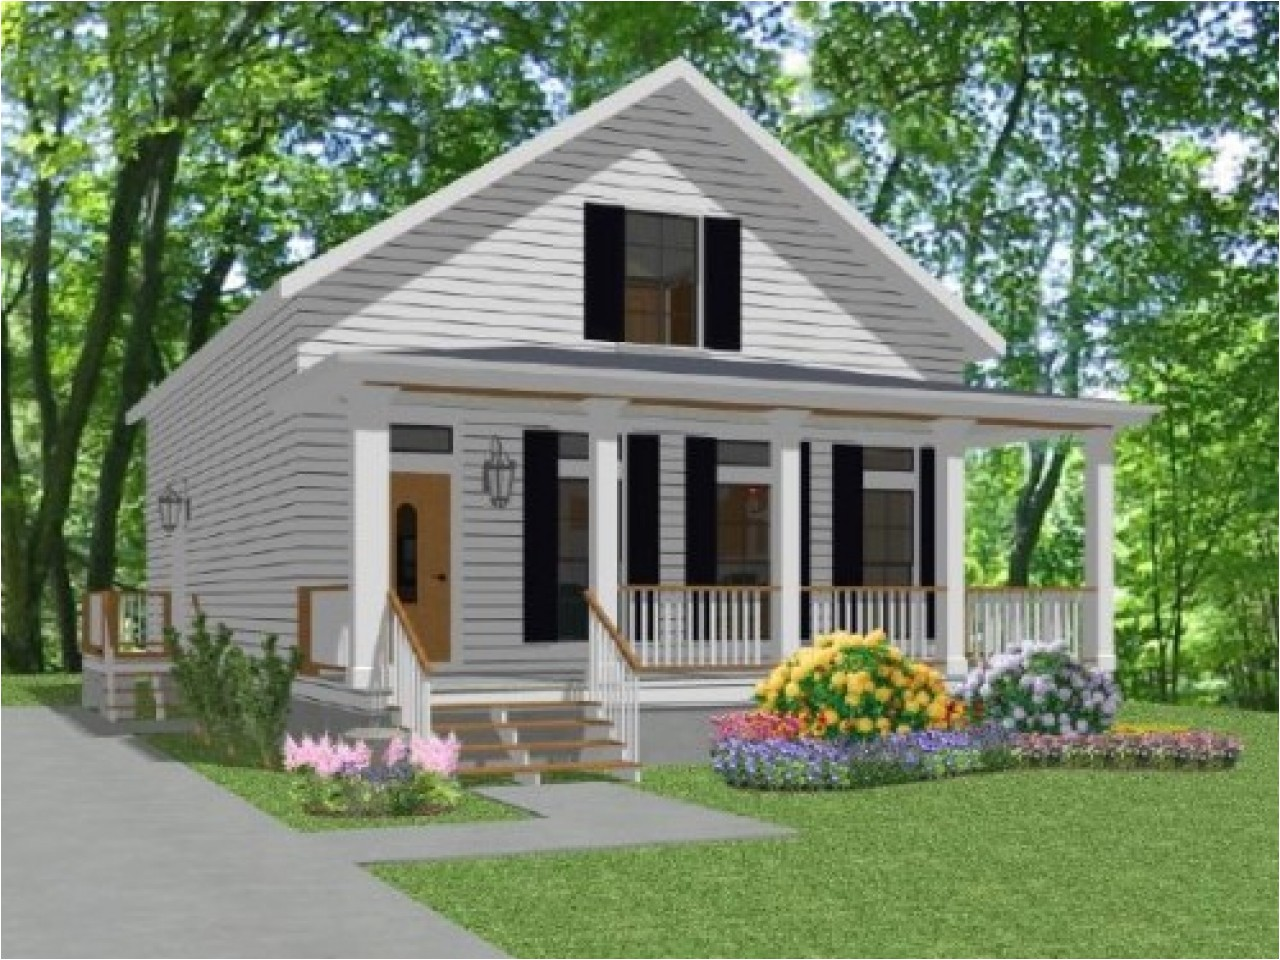 2773db8c0fa049e7 simple small house floor plans cheap small house plans